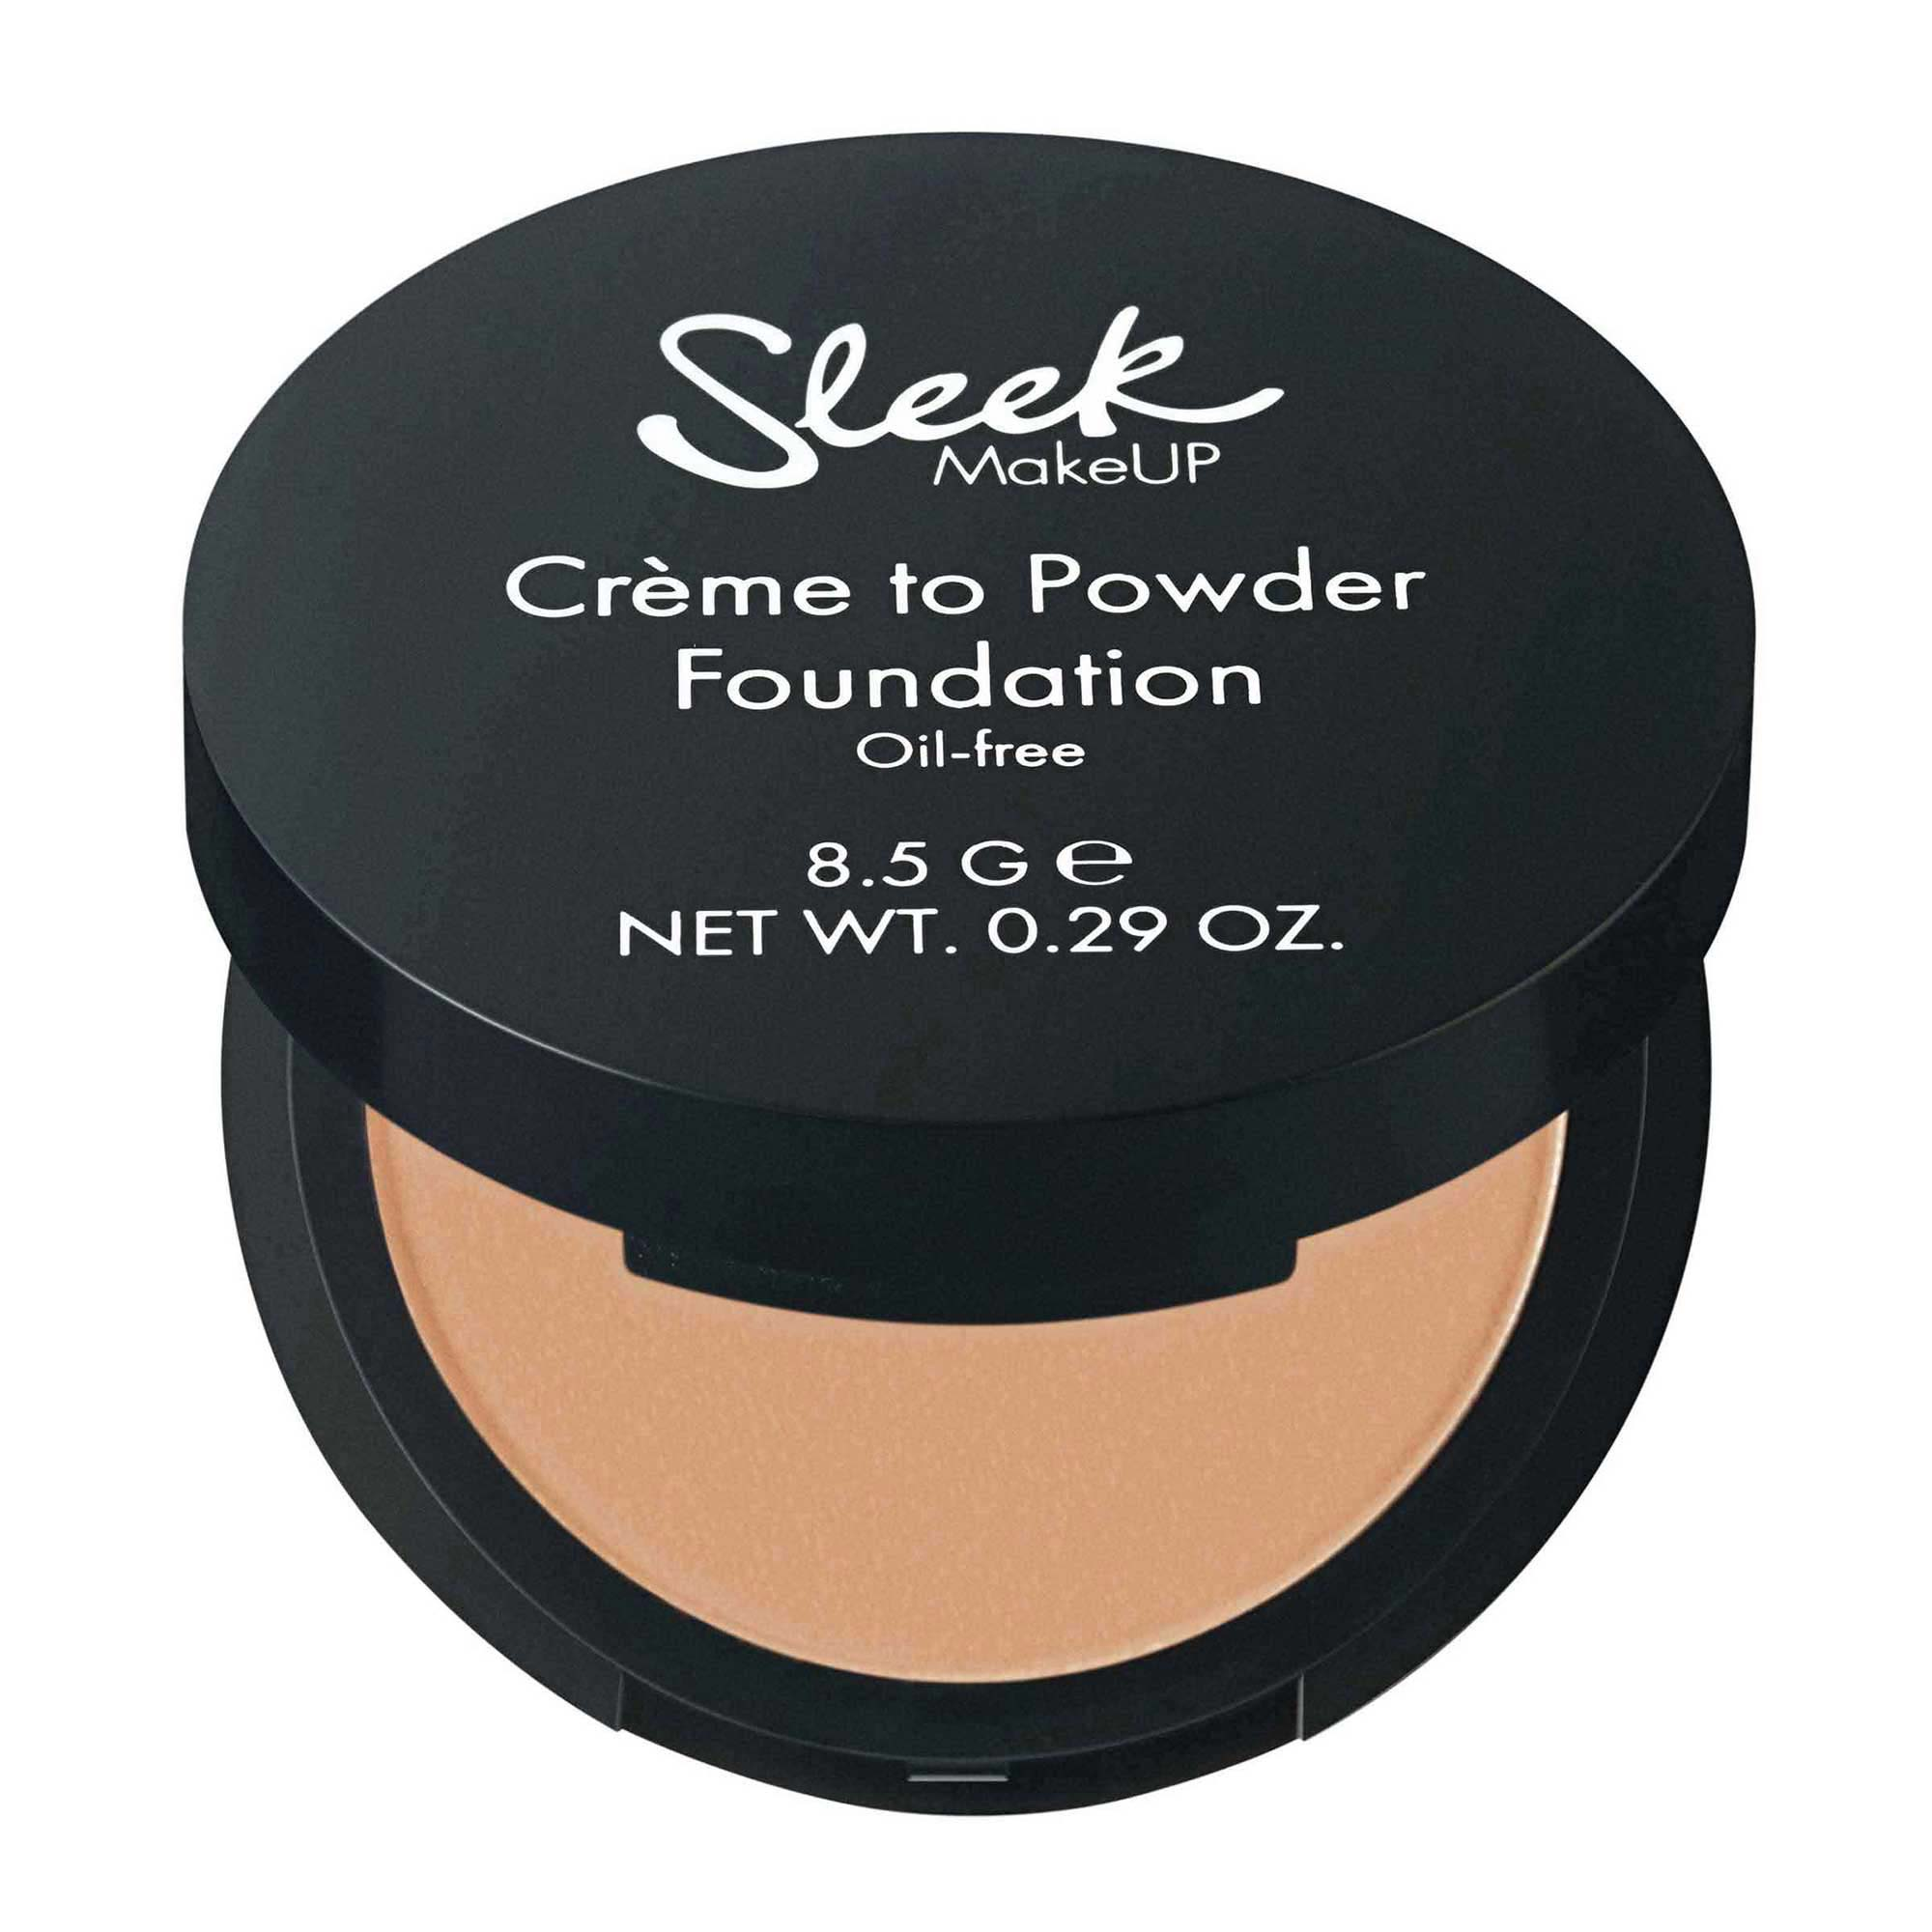 Creme to Powder 04 Sleek Makeup